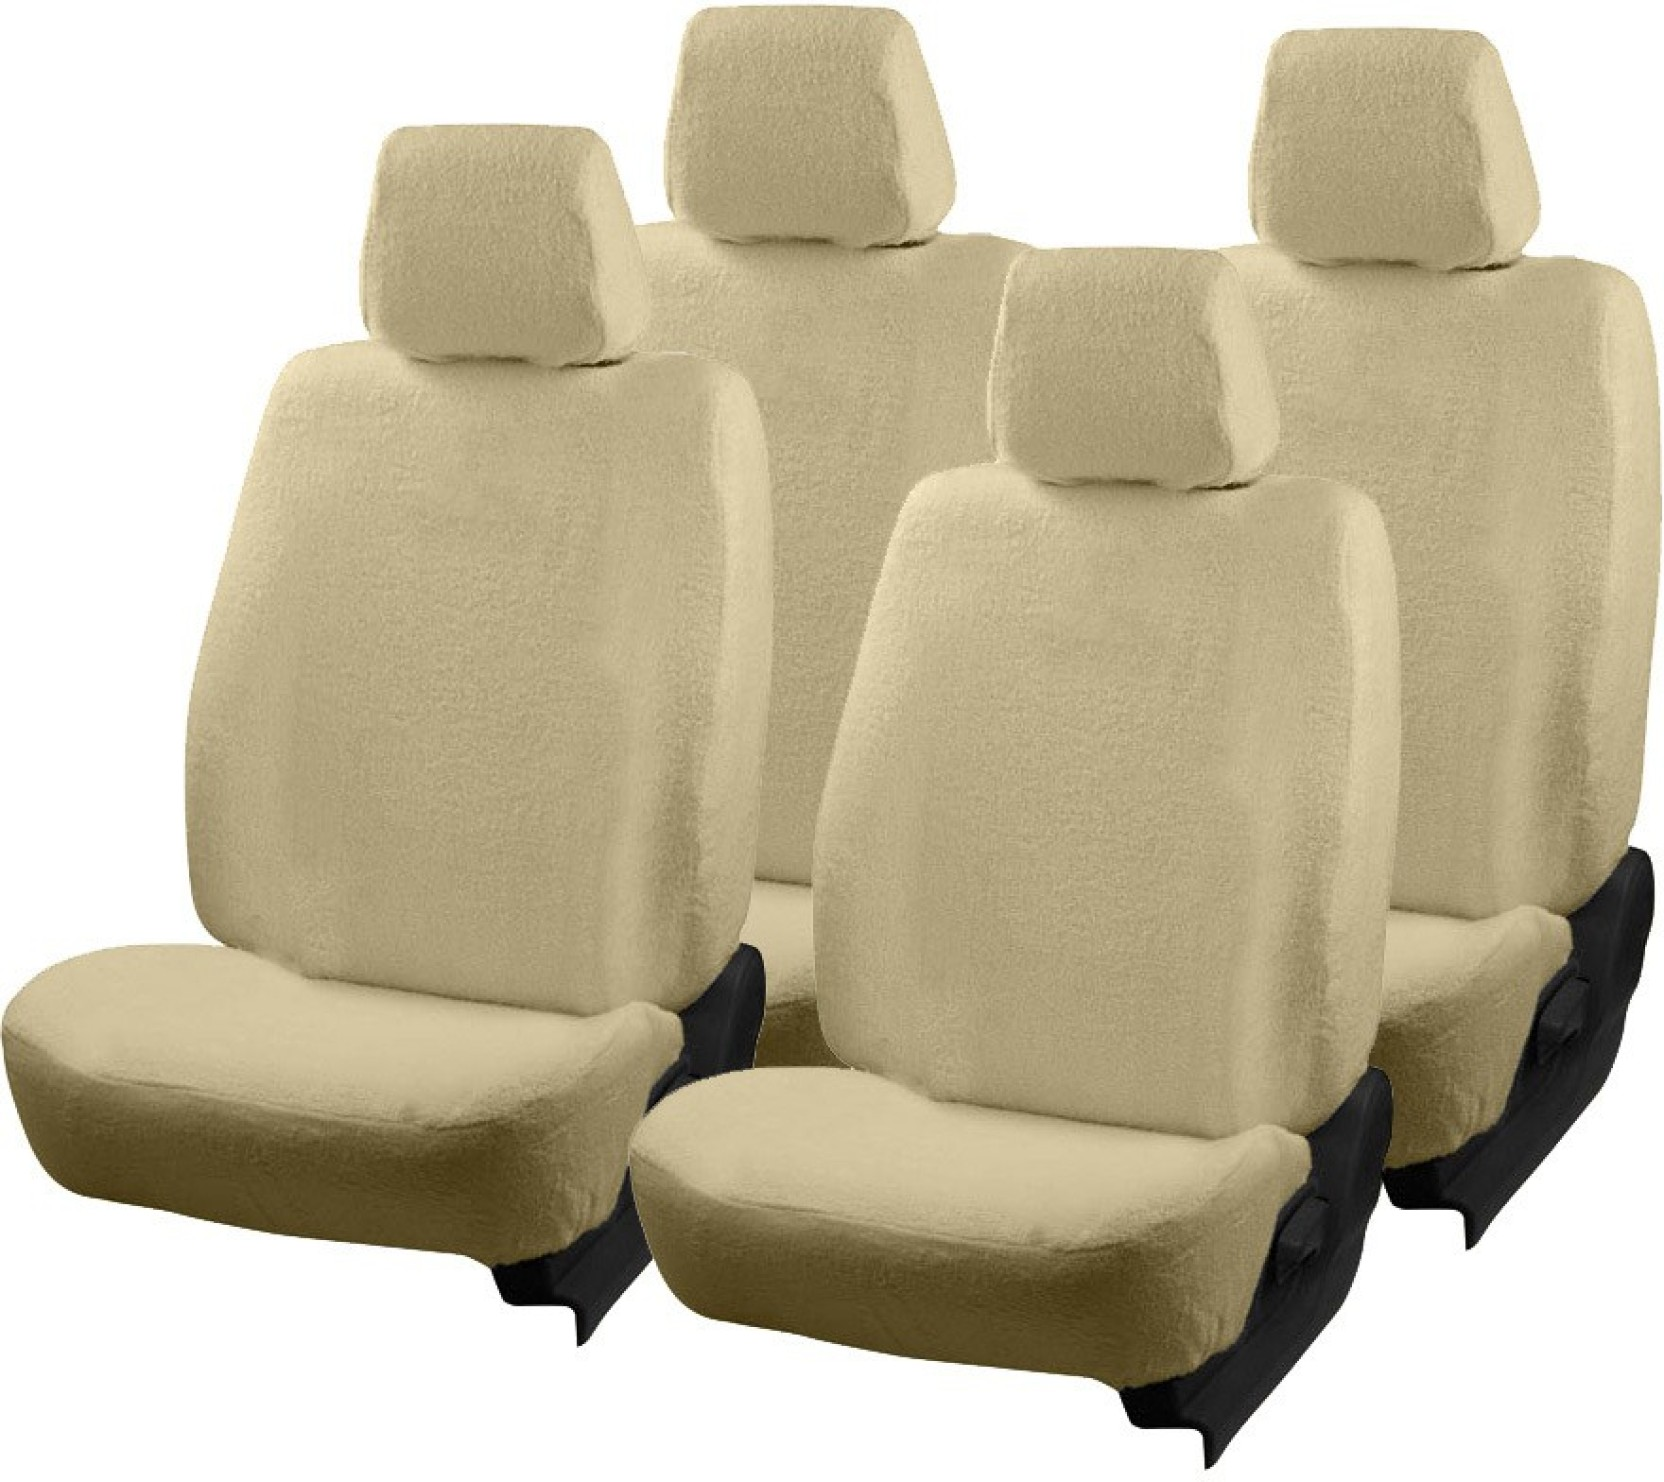 Autofurnish Cotton Car Seat Cover For Maruti Baleno Price